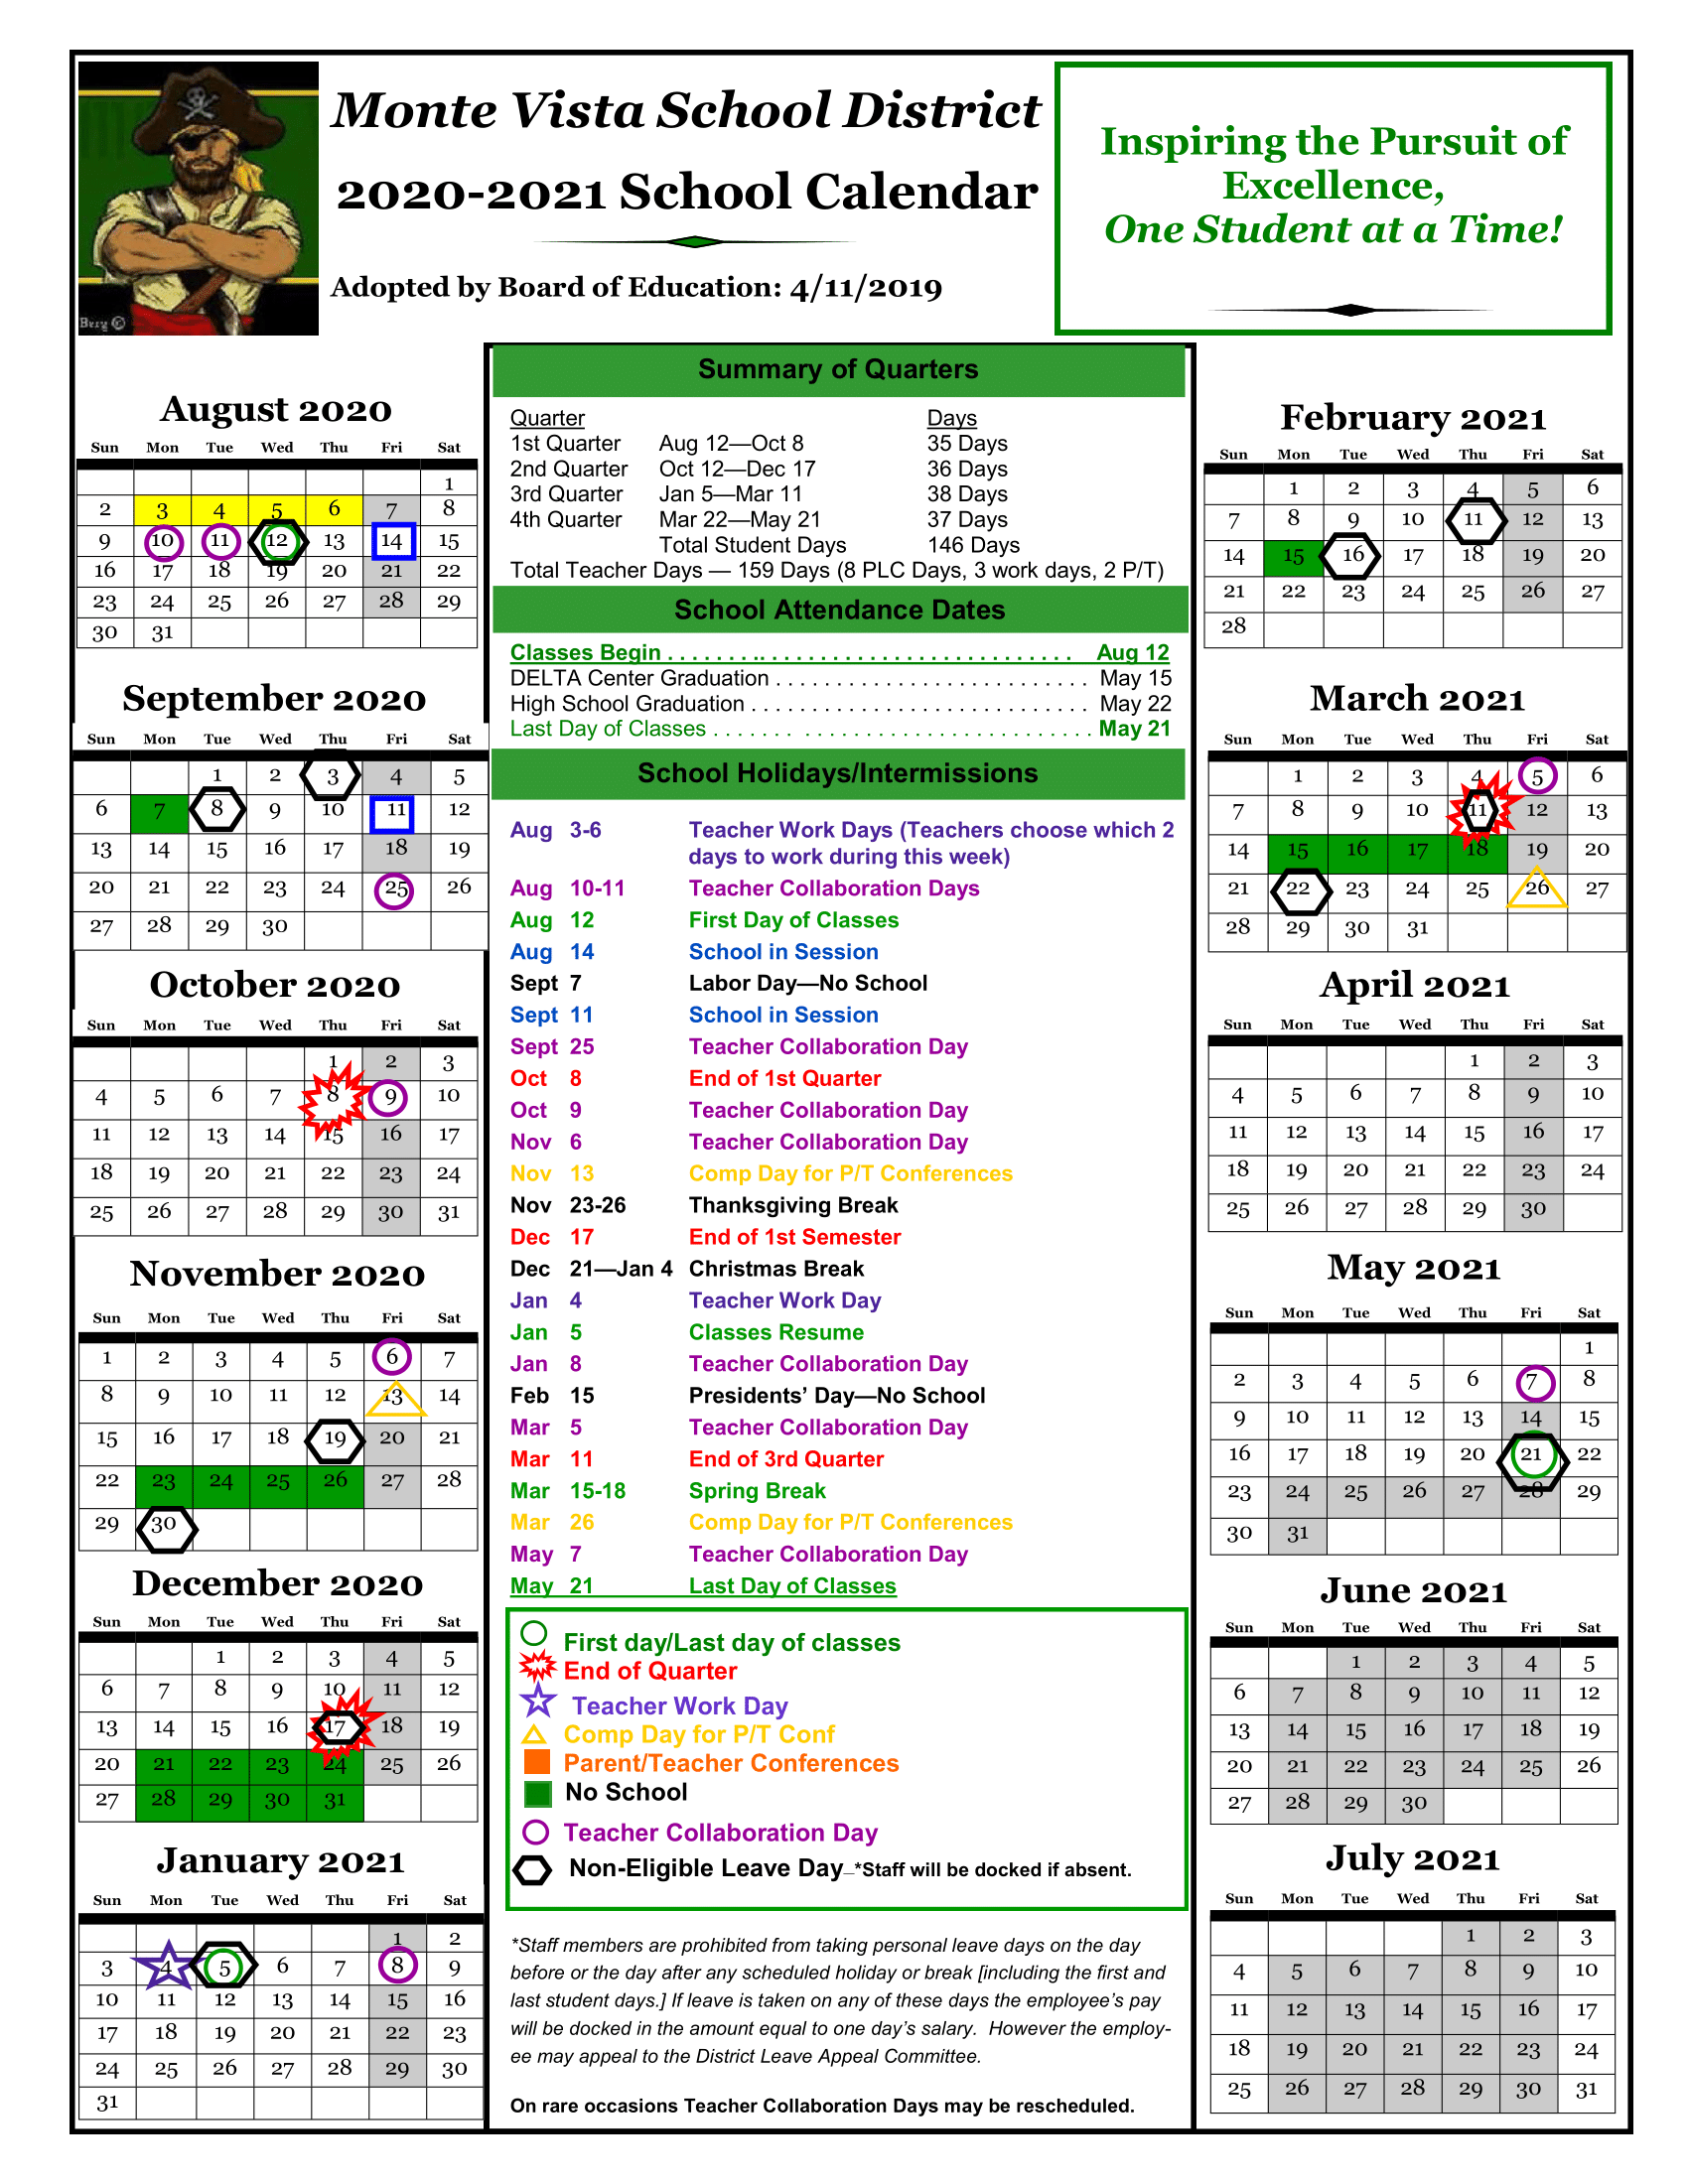 Calendars – Monte Vista School District Intended For Ontario Montclair School District Calendar